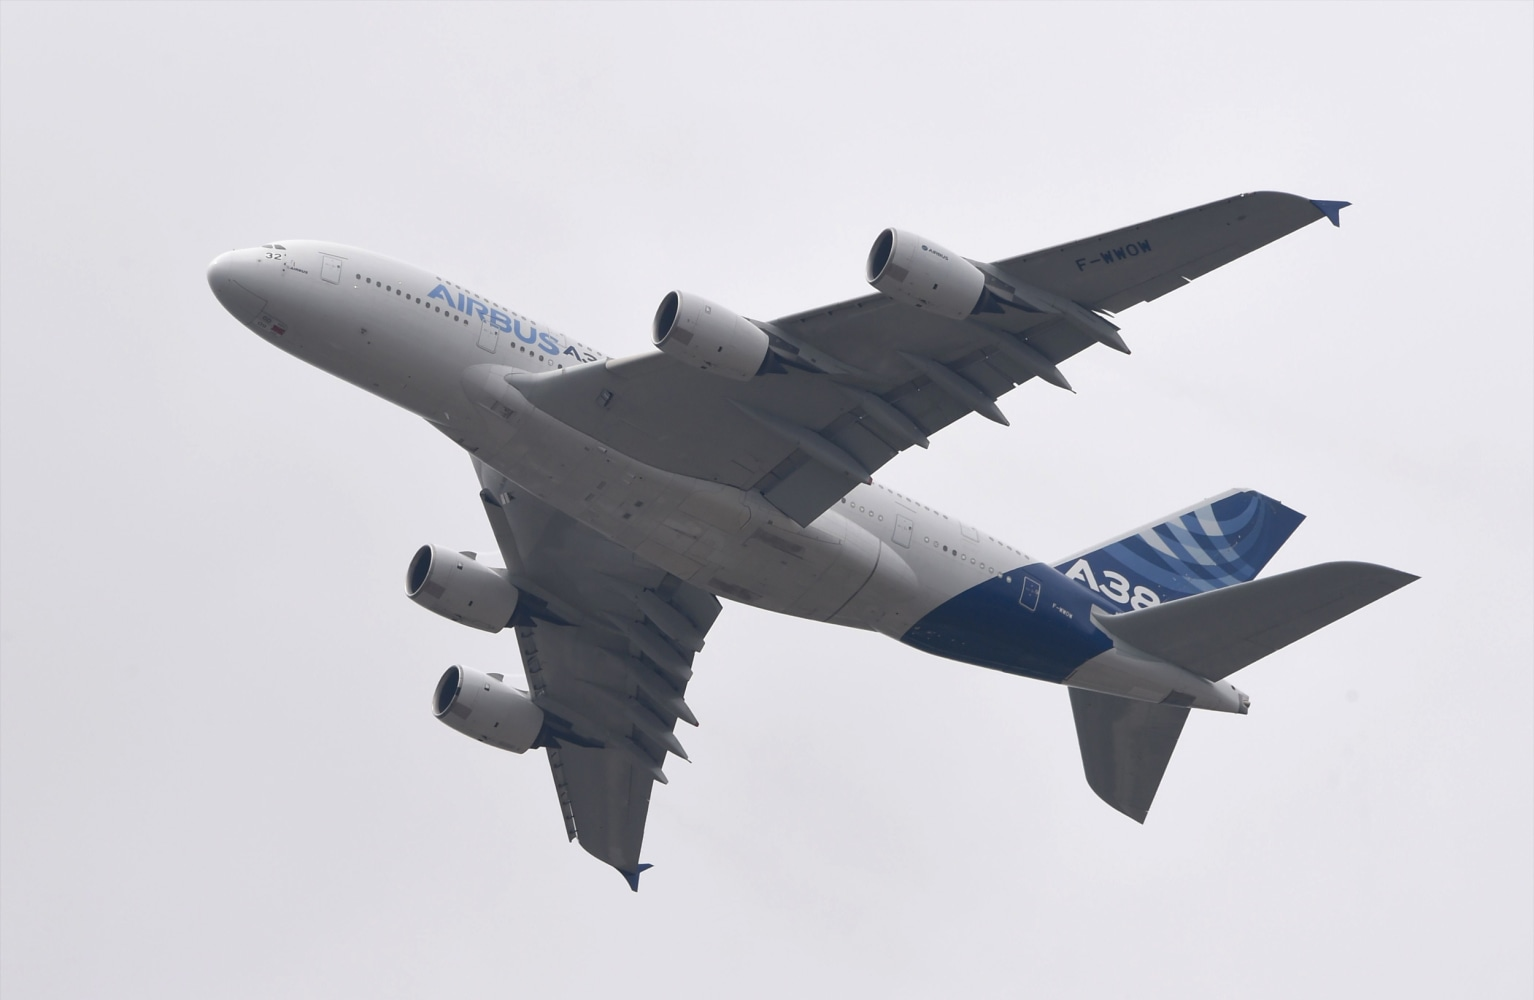 Private Jet Flipped After Hitting Turbulence From Airbus, Reports Say